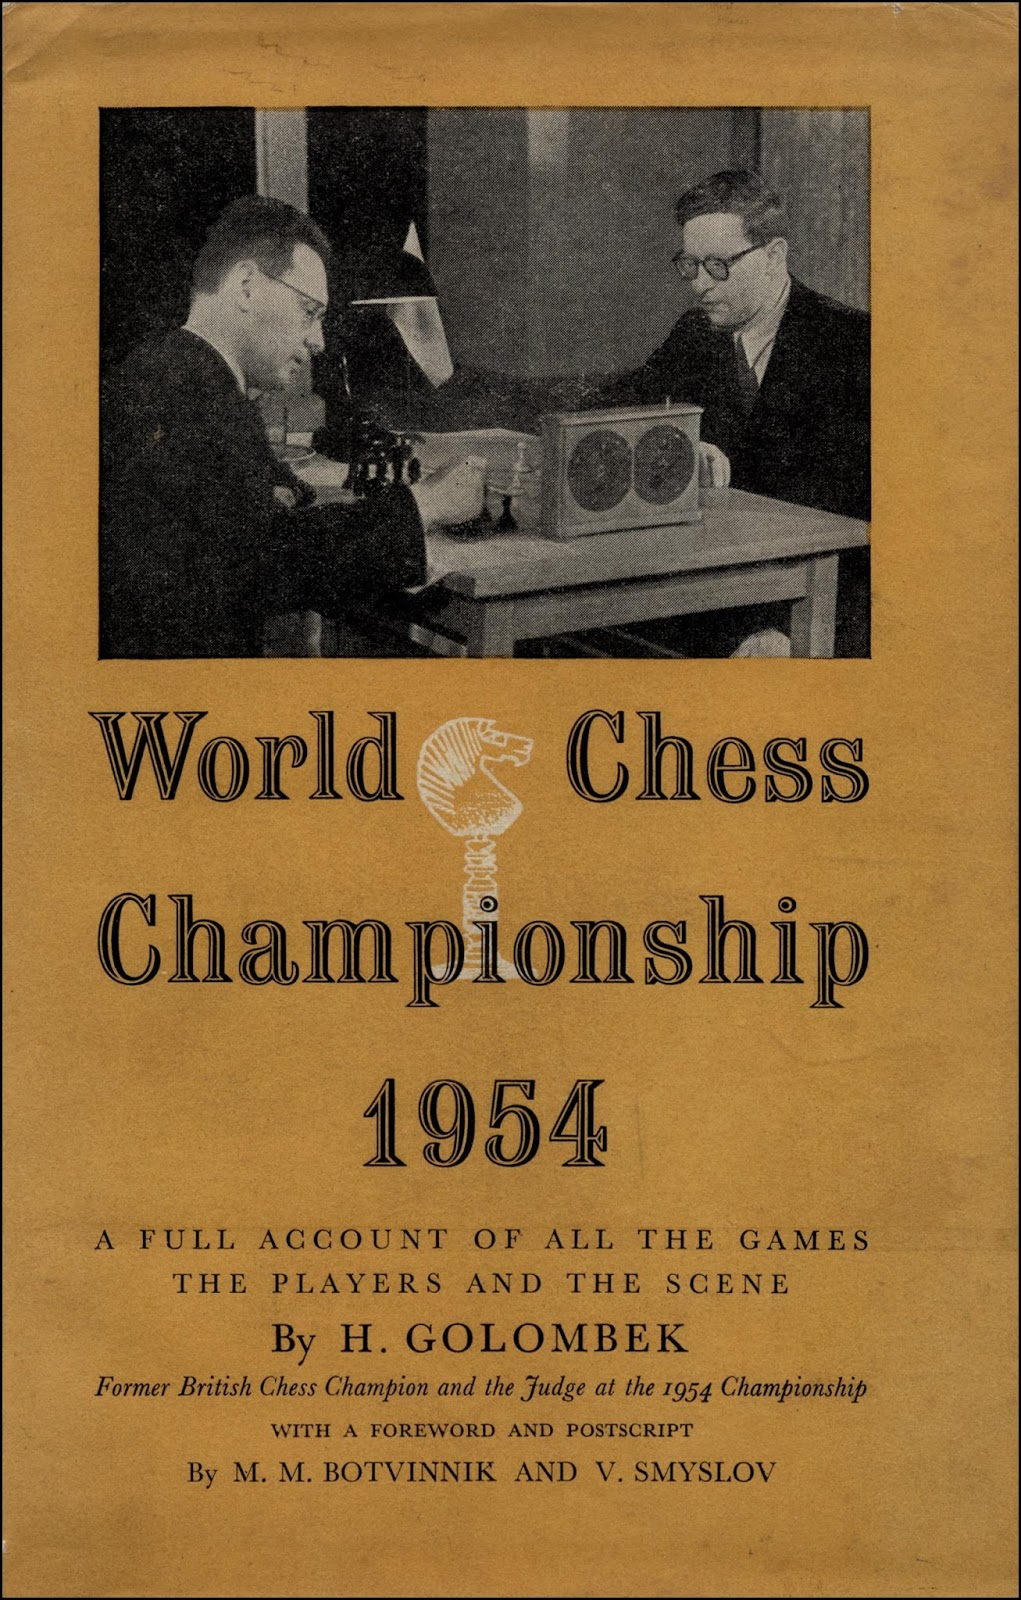 The World Chess Championship 1954